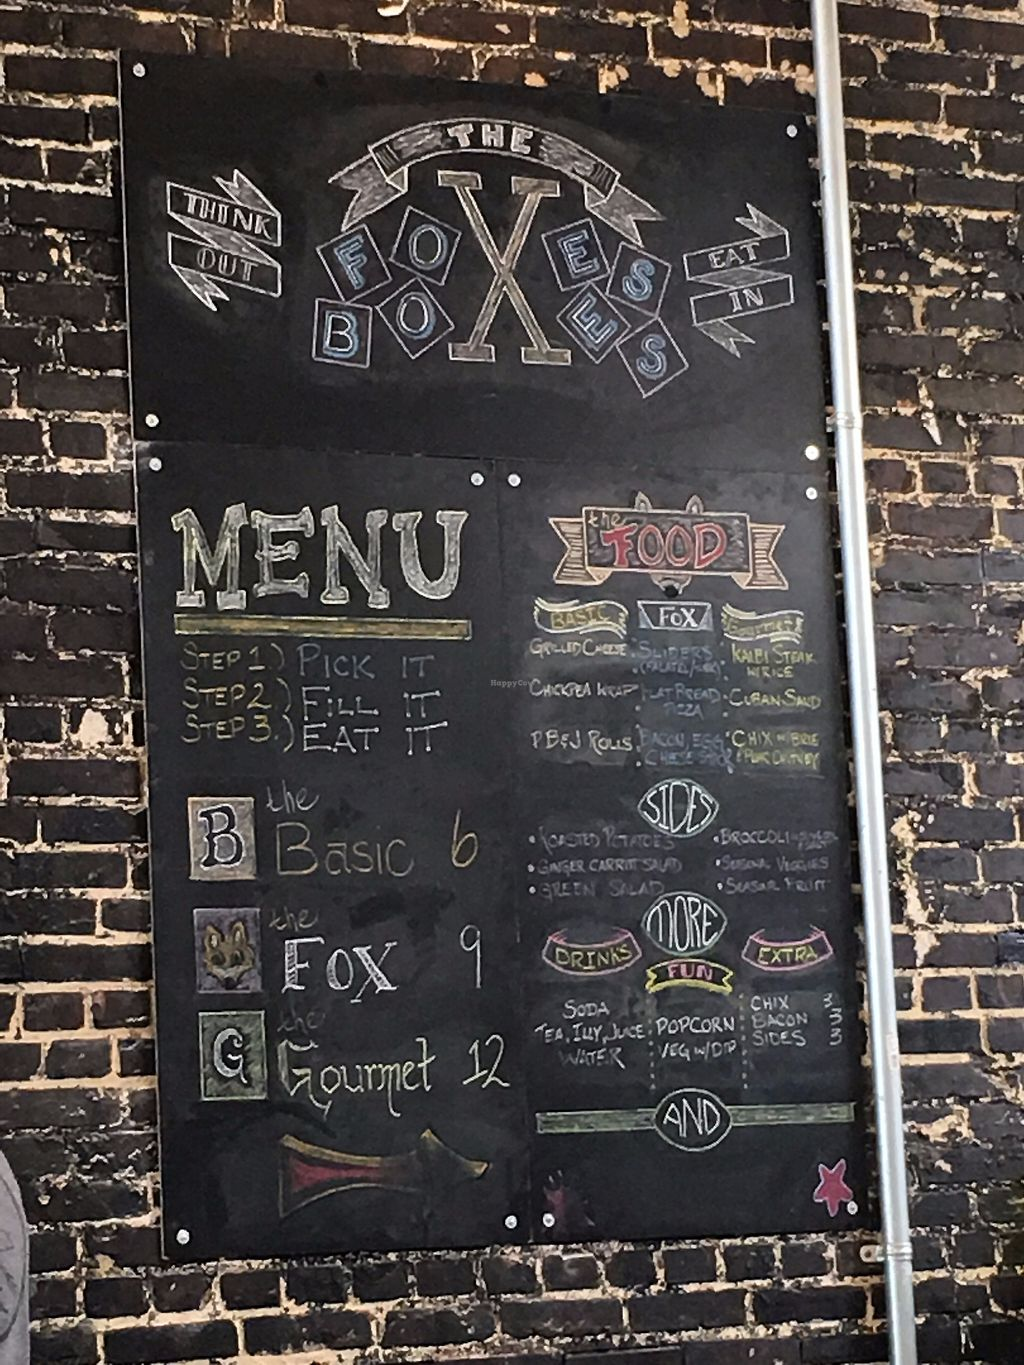 """Photo of The Foxes Boxes  by <a href=""""/members/profile/TraciH"""">TraciH</a> <br/>Menu Board <br/> November 13, 2017  - <a href='/contact/abuse/image/94534/325279'>Report</a>"""